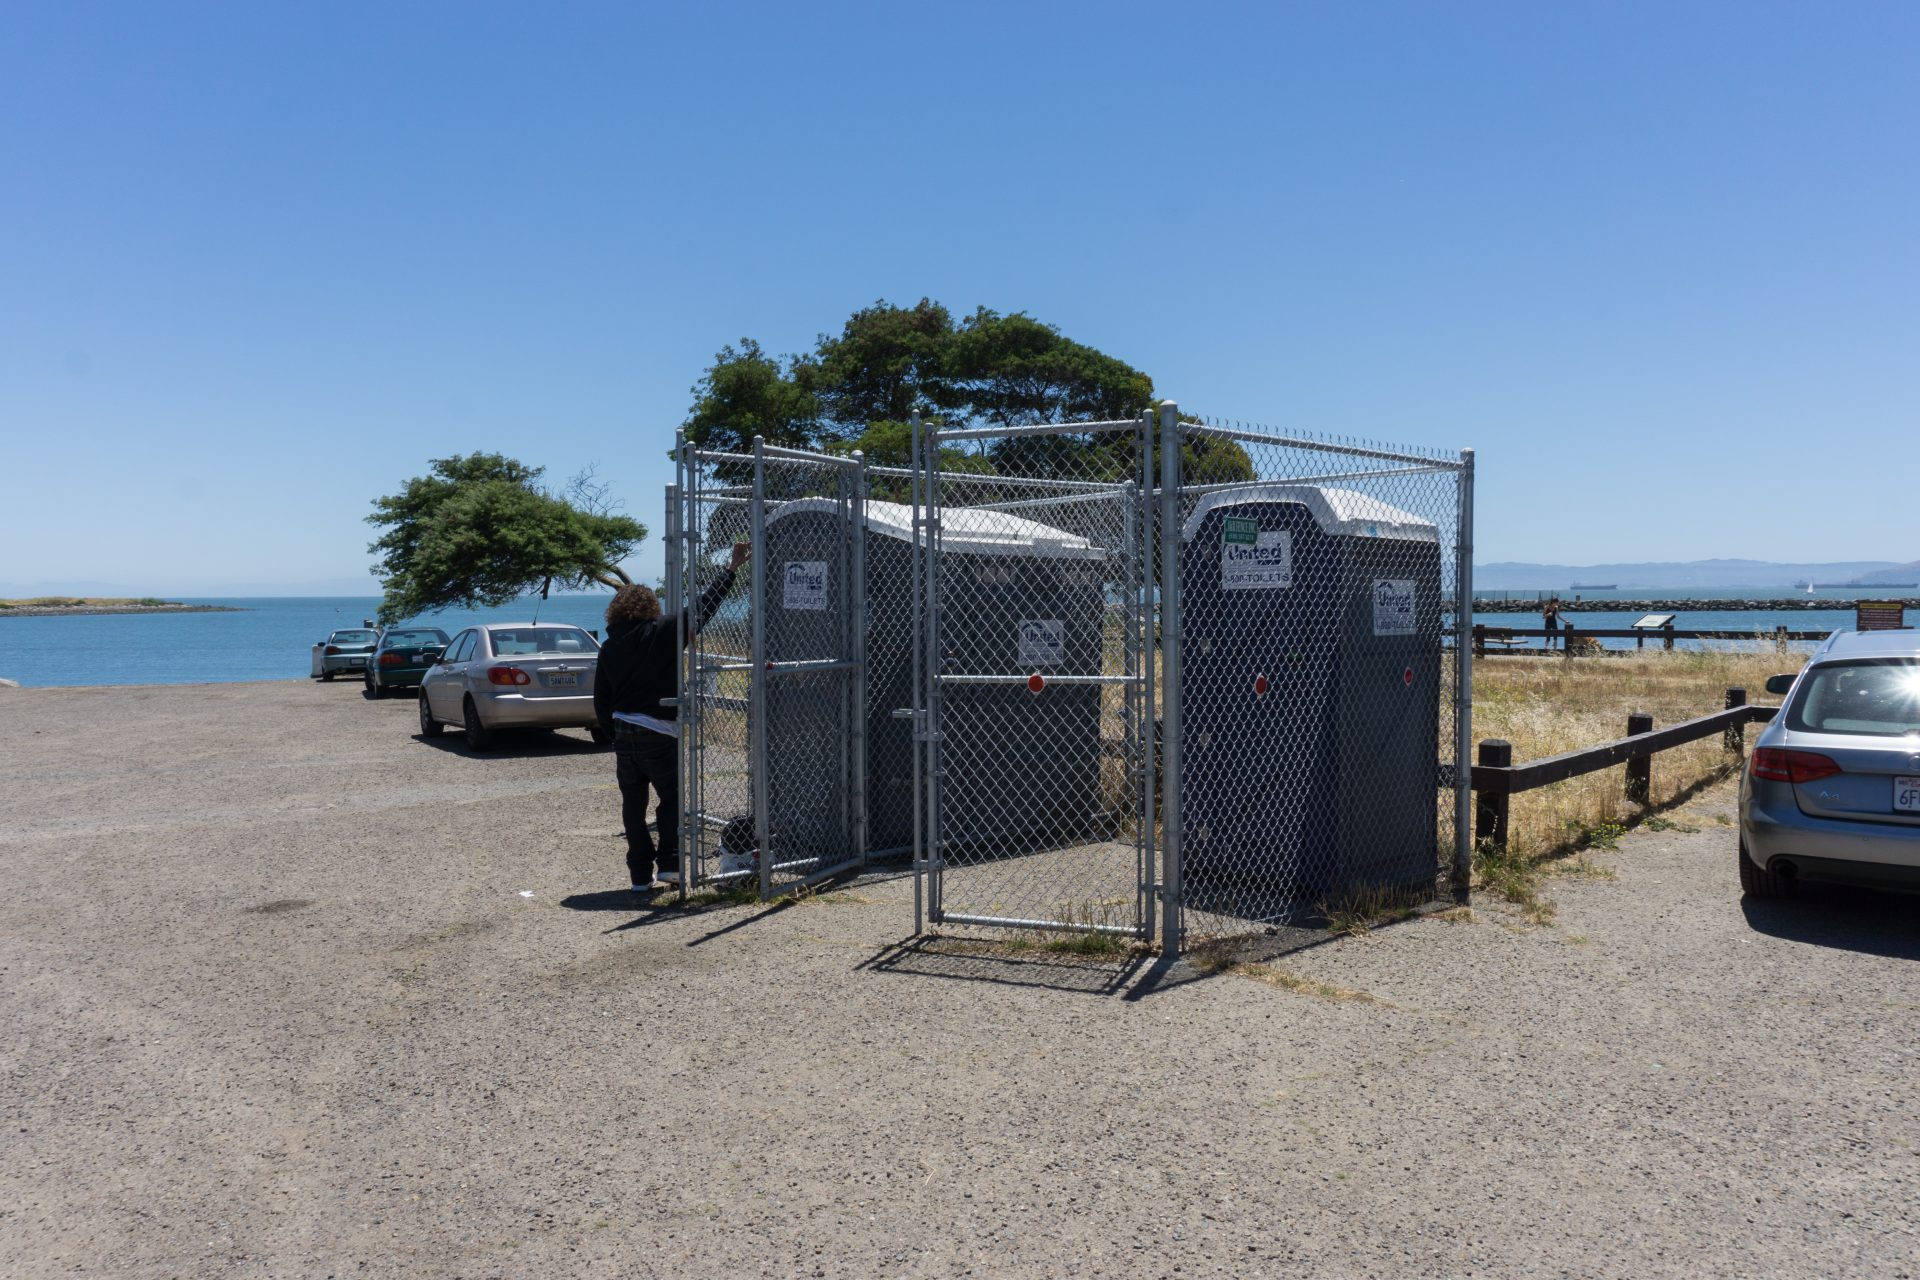 portable toilets inside chainlink enclosure